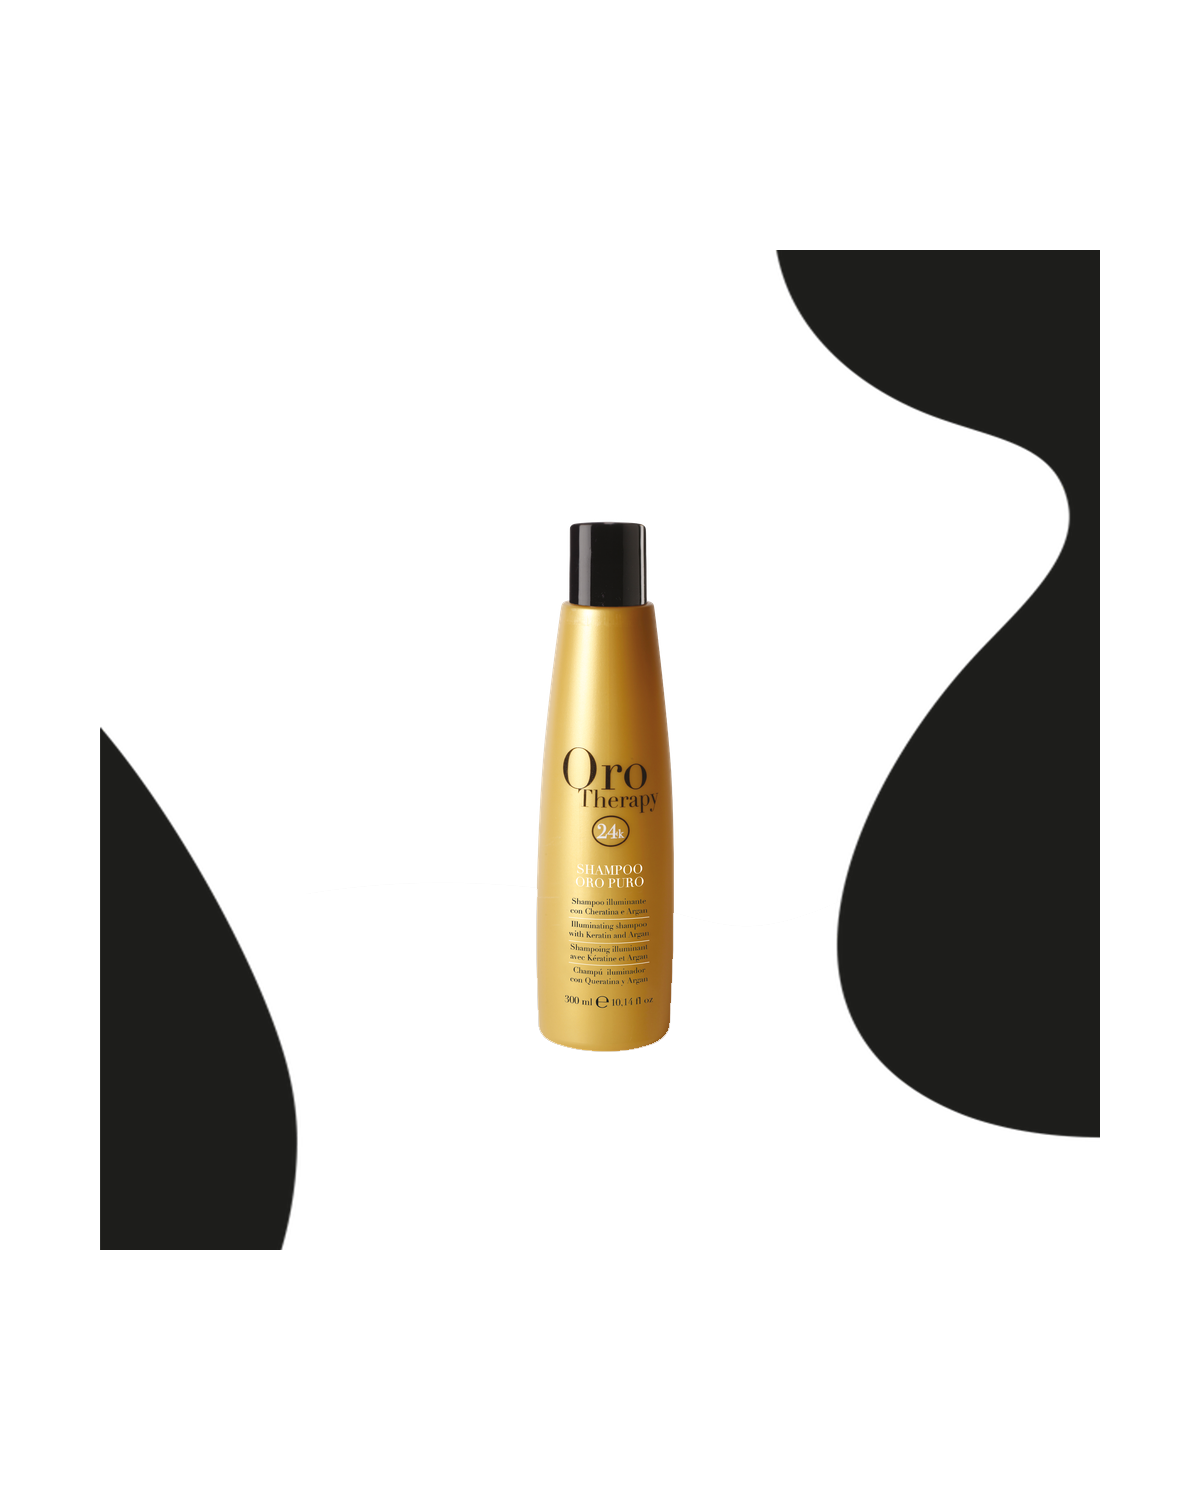 Shampooing 24k à base d'huile d'argan 300ml d'or pur - Fanola Oro Therapy